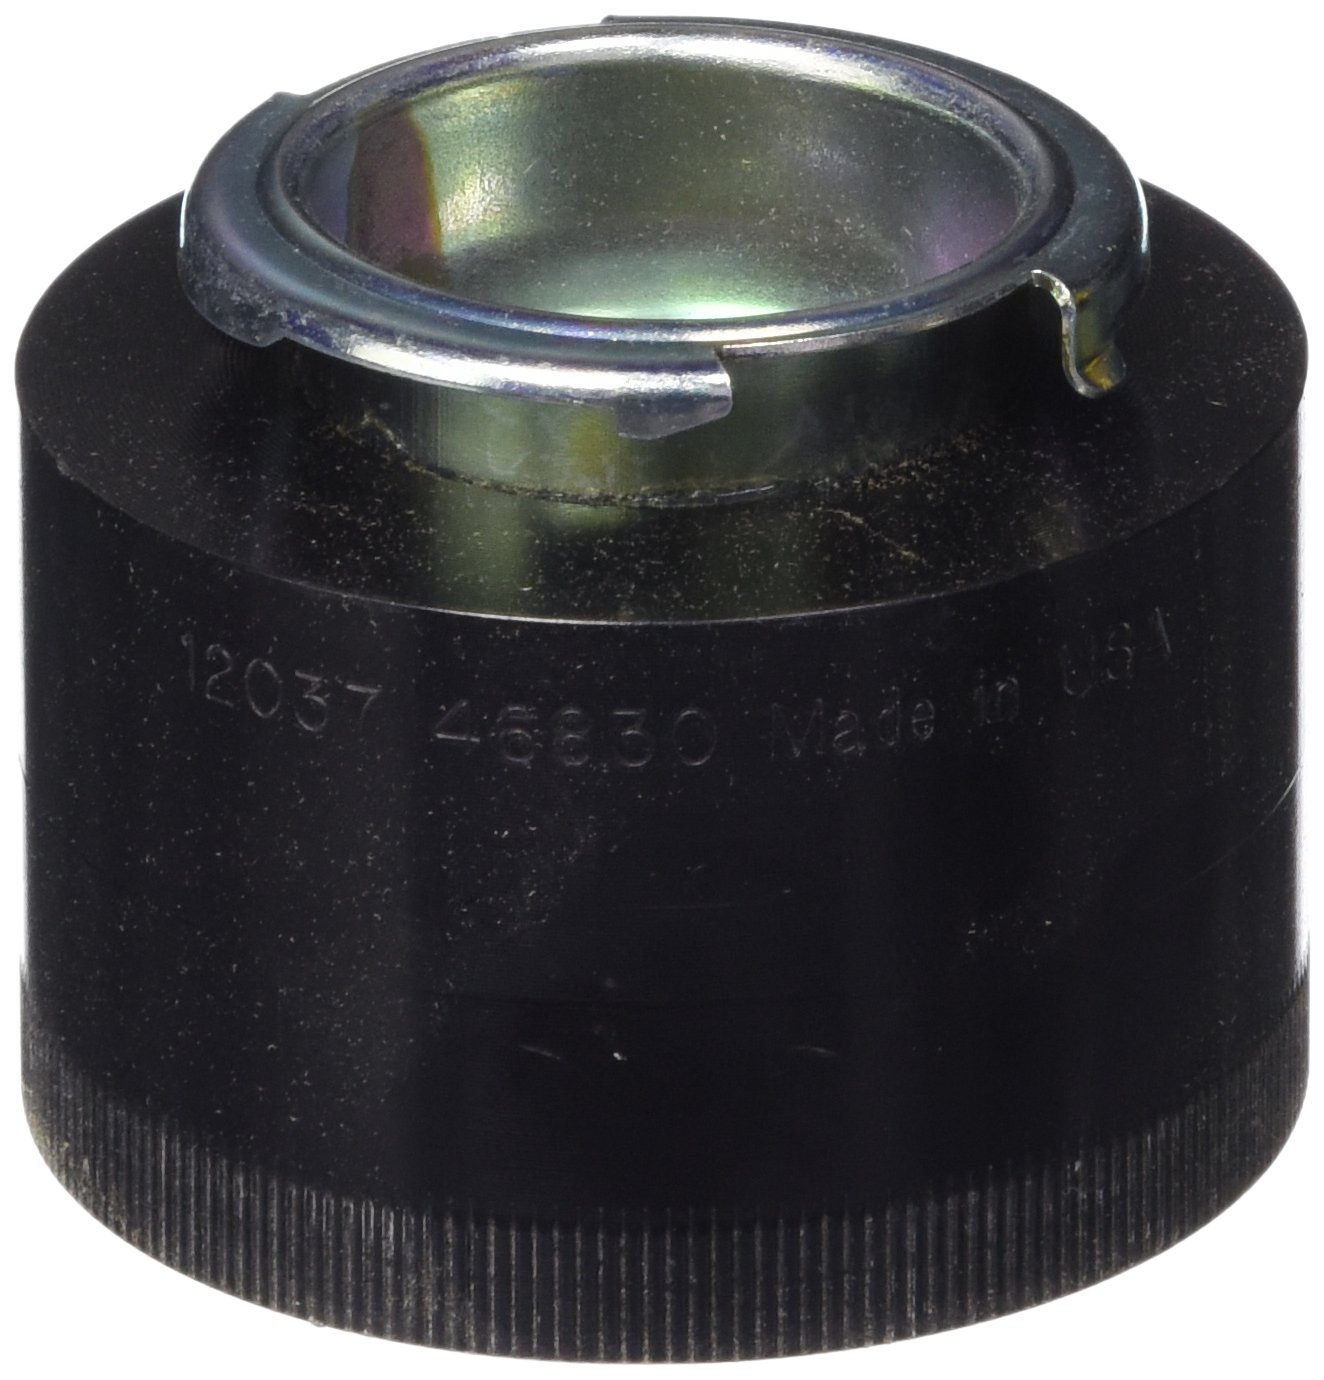 Stant 12037 Cooling System Pressure Tester Threaded 'Cap' Adapter